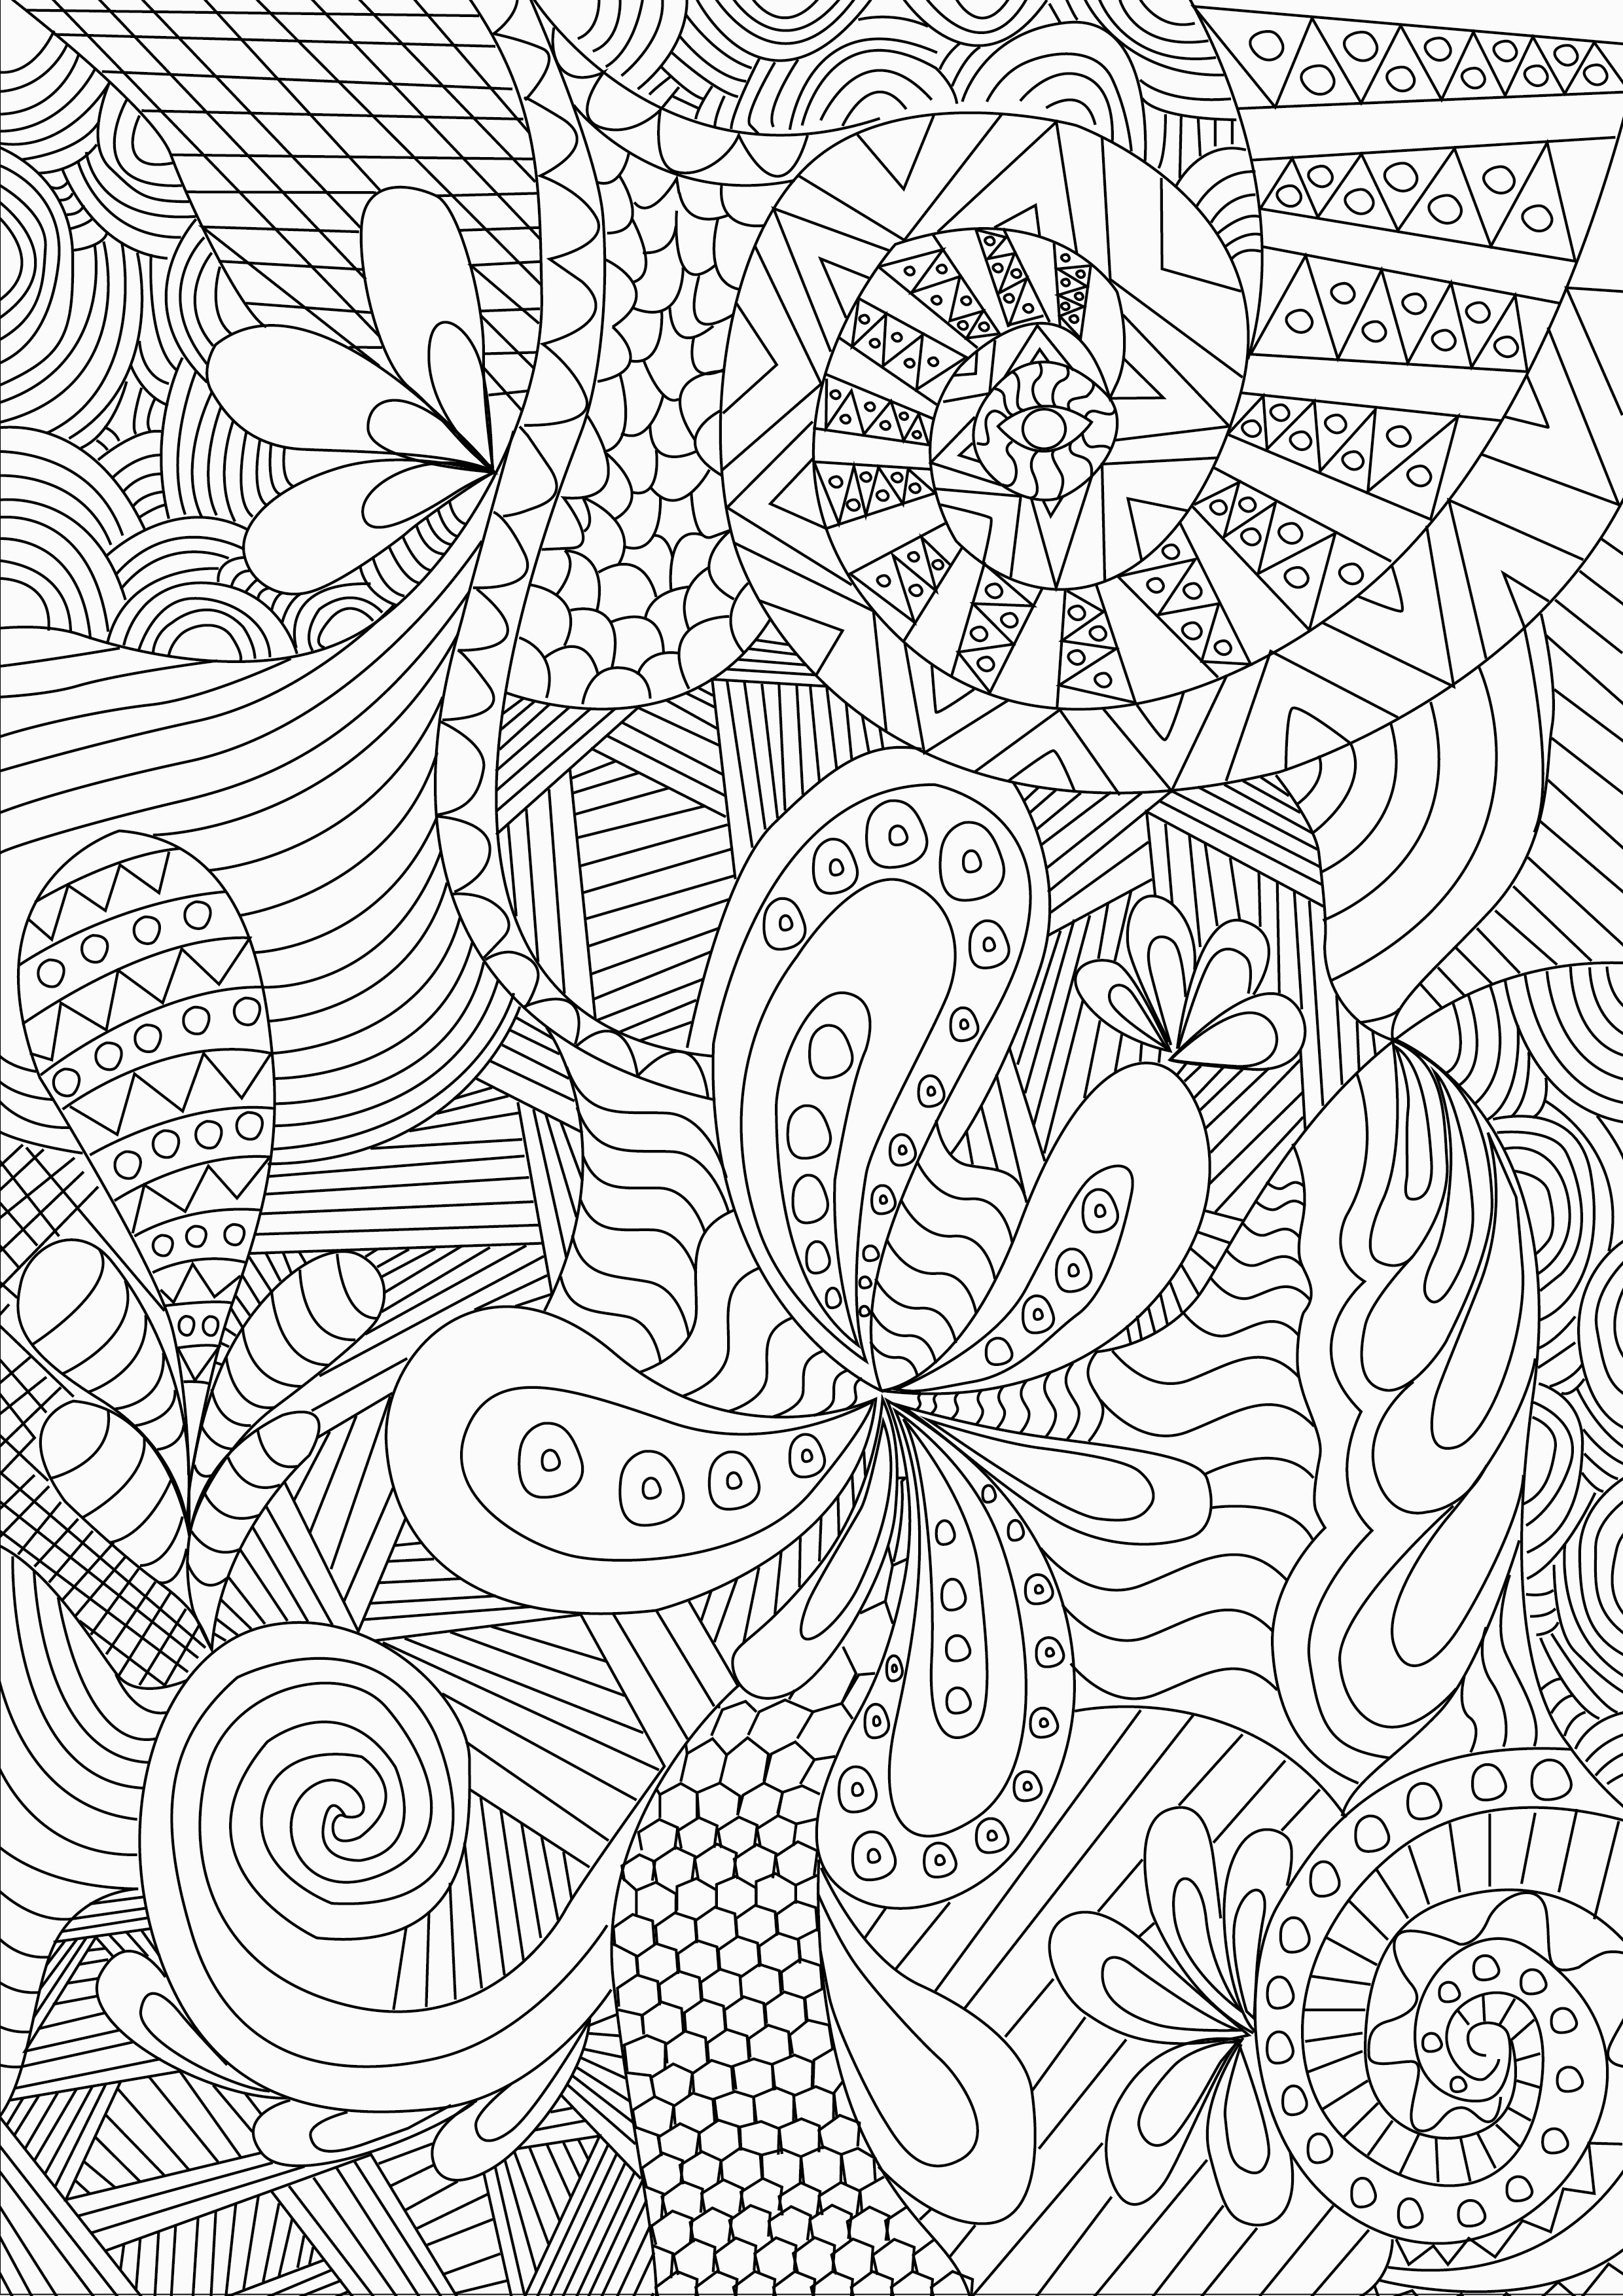 Best ideas about Adult Coloring Books Printable . Save or Pin Zentangle Colouring Pages In The Playroom Now.